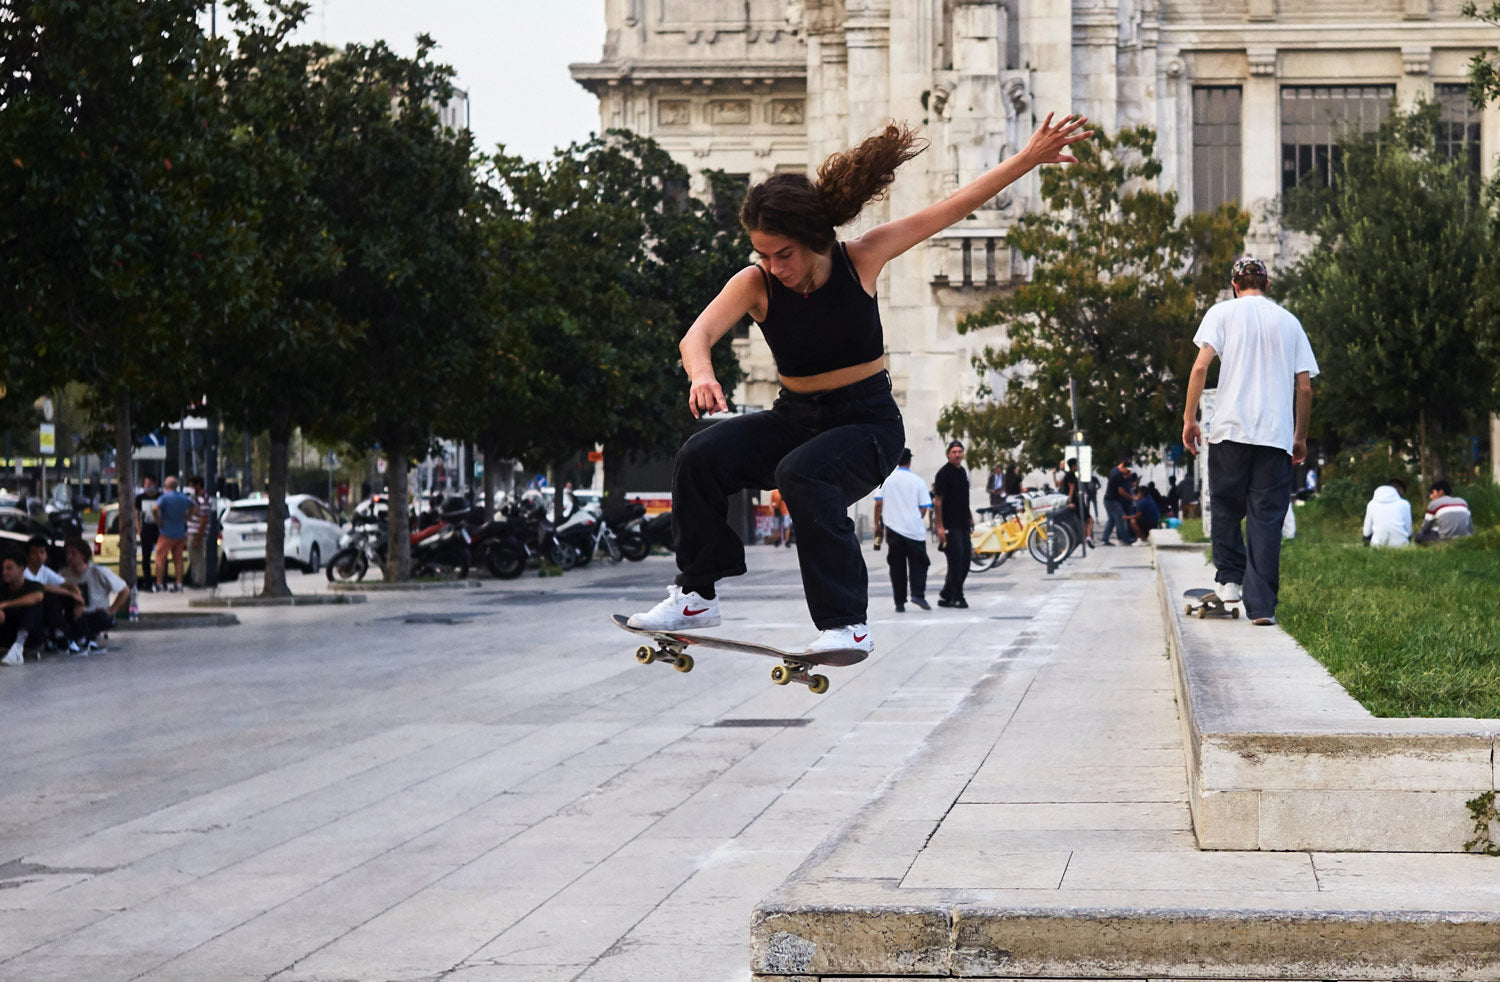 Milano Centrale's skaters: a community within the community